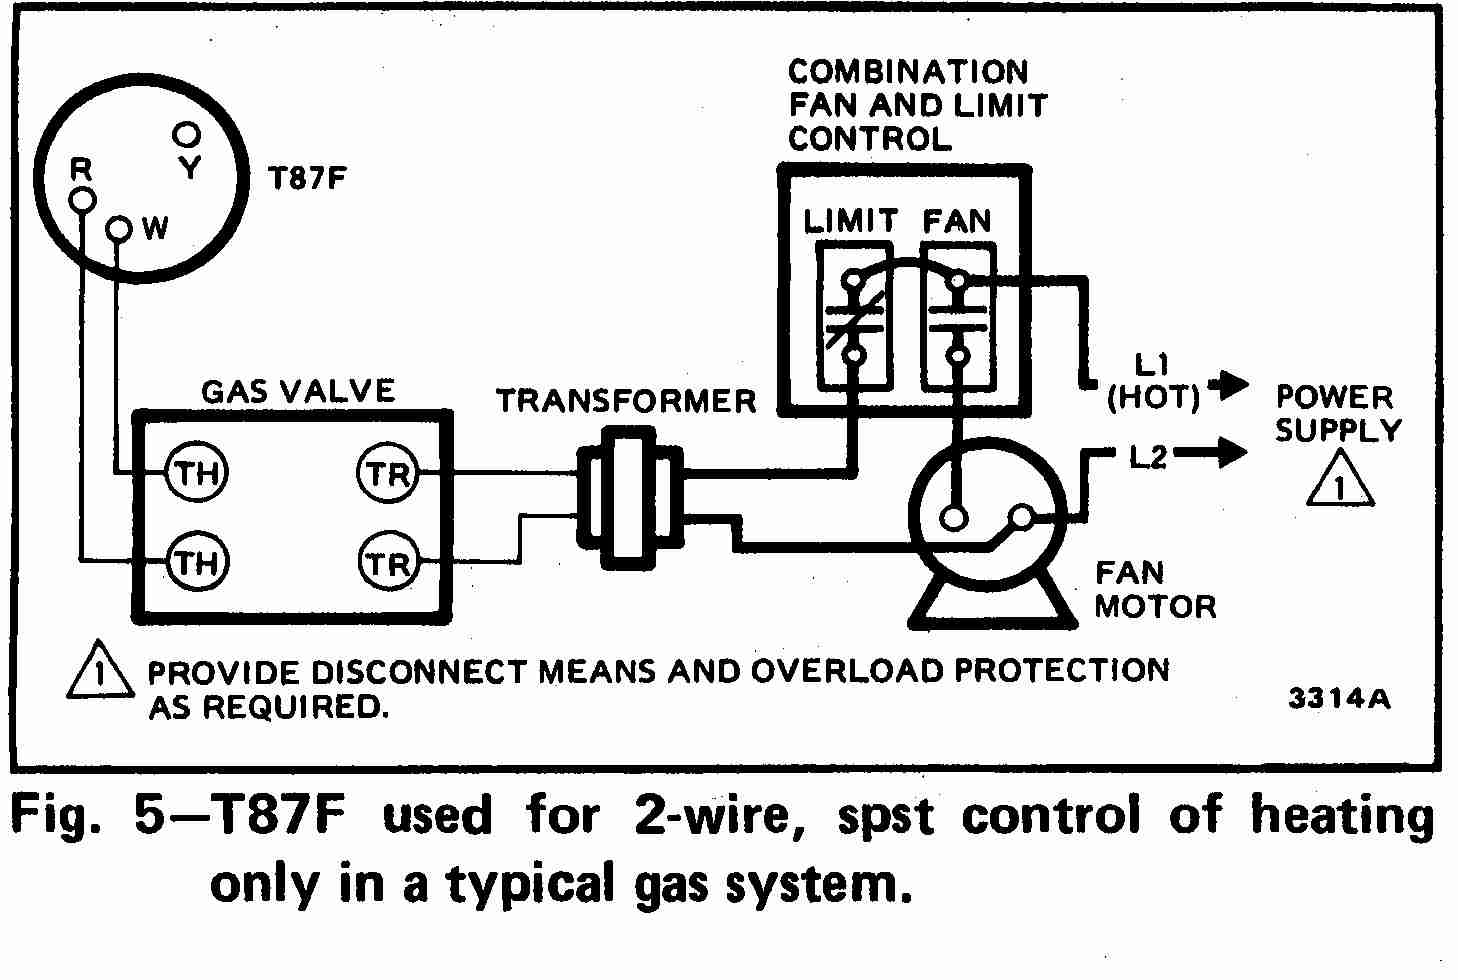 Zone Valve Wiring further Thermostat Wiring Instructions likewise Honeywell Steam Valves Actuators Wiring Diagram additionally Vr8300a4516 Wiring Diagram likewise 5. on honeywell zone valve end switch wiring